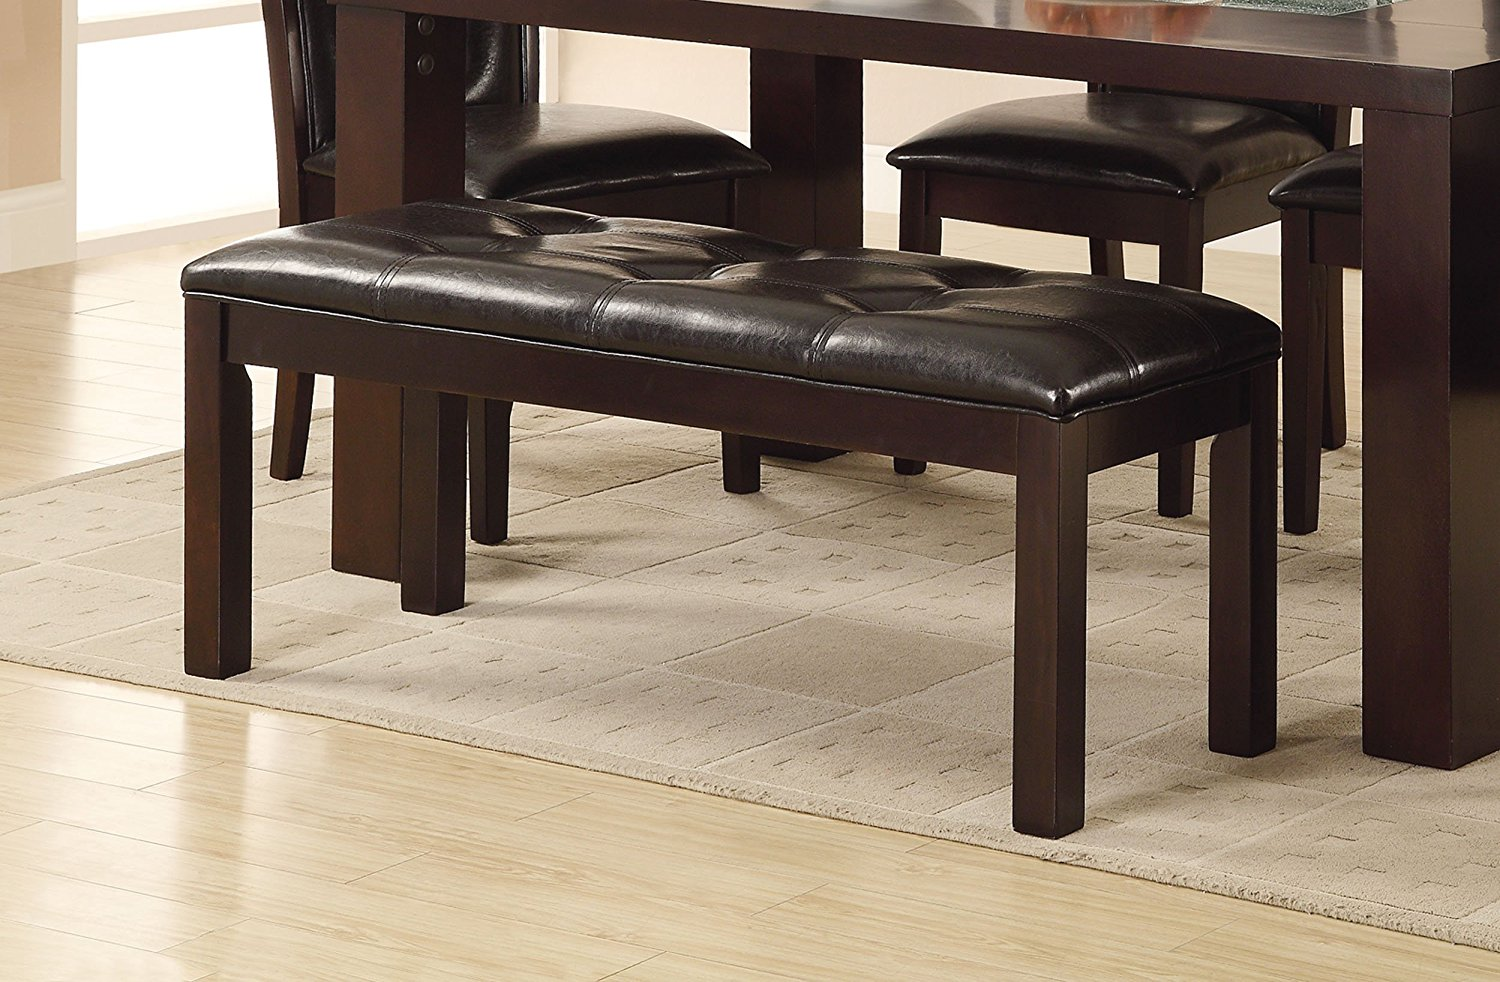 Homelegance 2528 13 Dining Bench, 49 Inch, Western, Dark Brown, Espresso  Finish